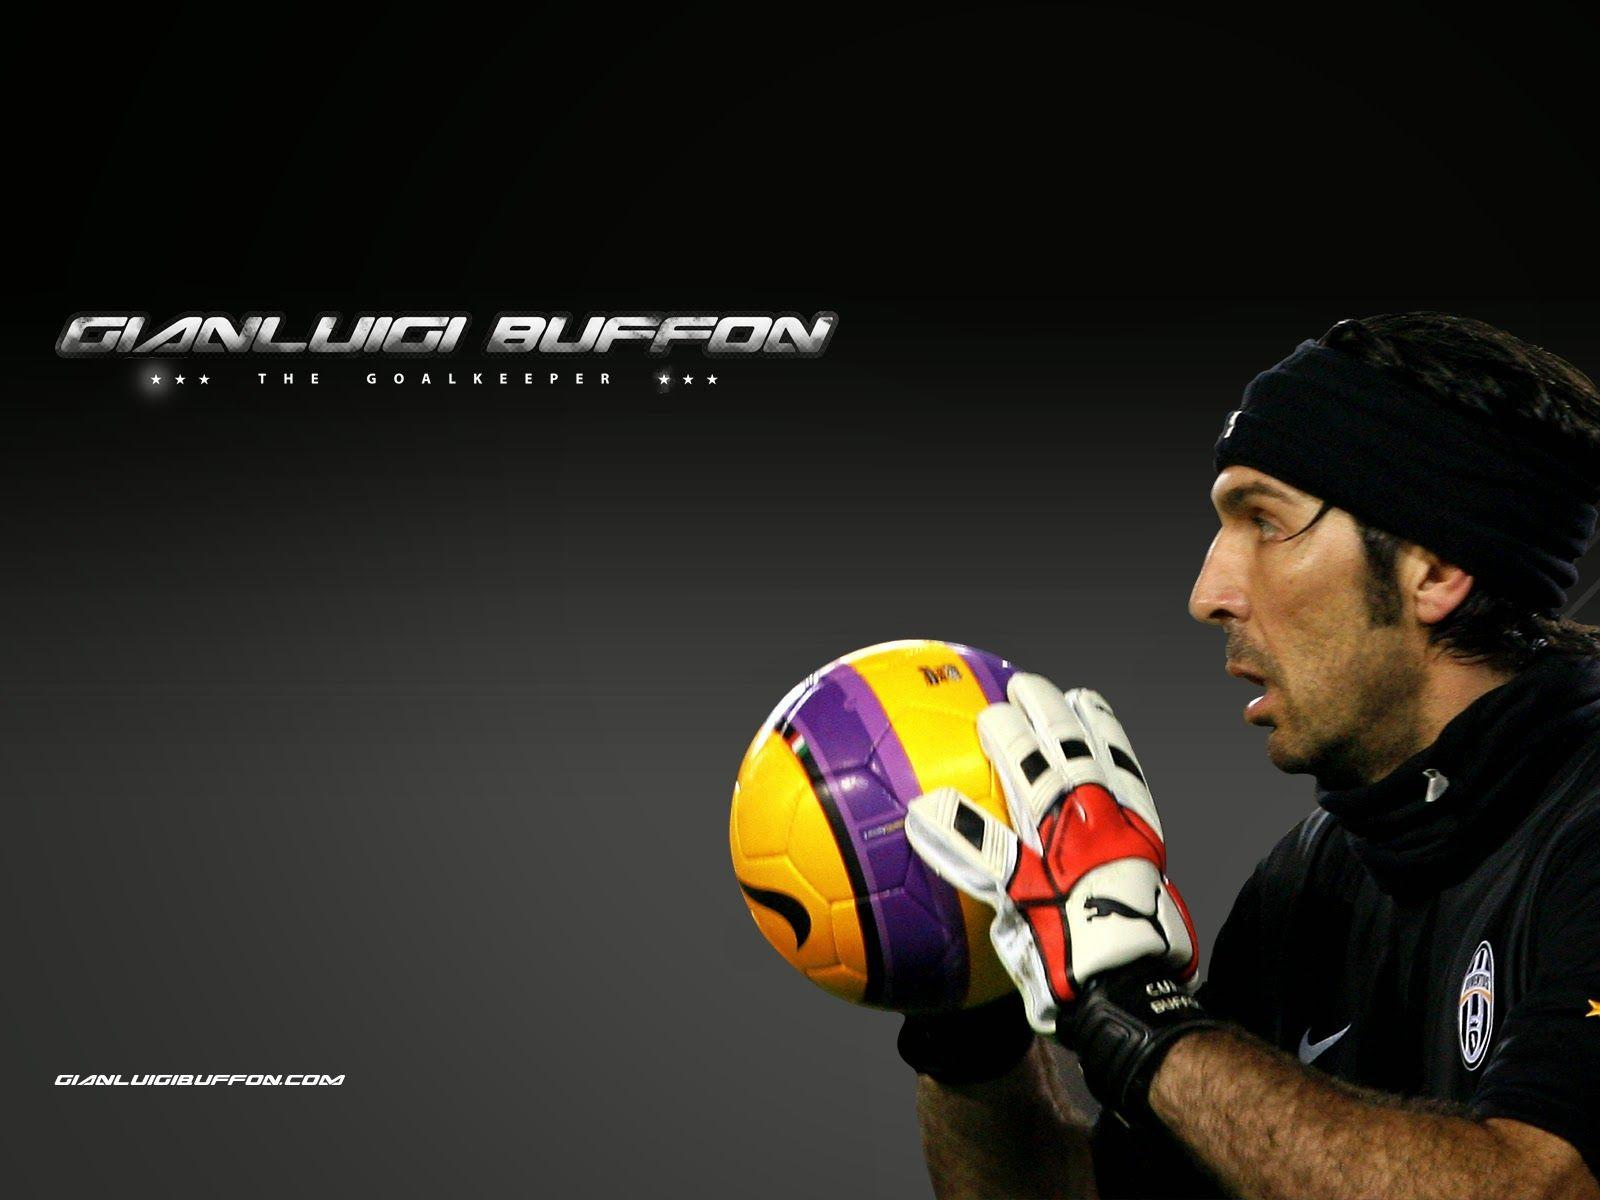 best wallpaper buffon - photo #2